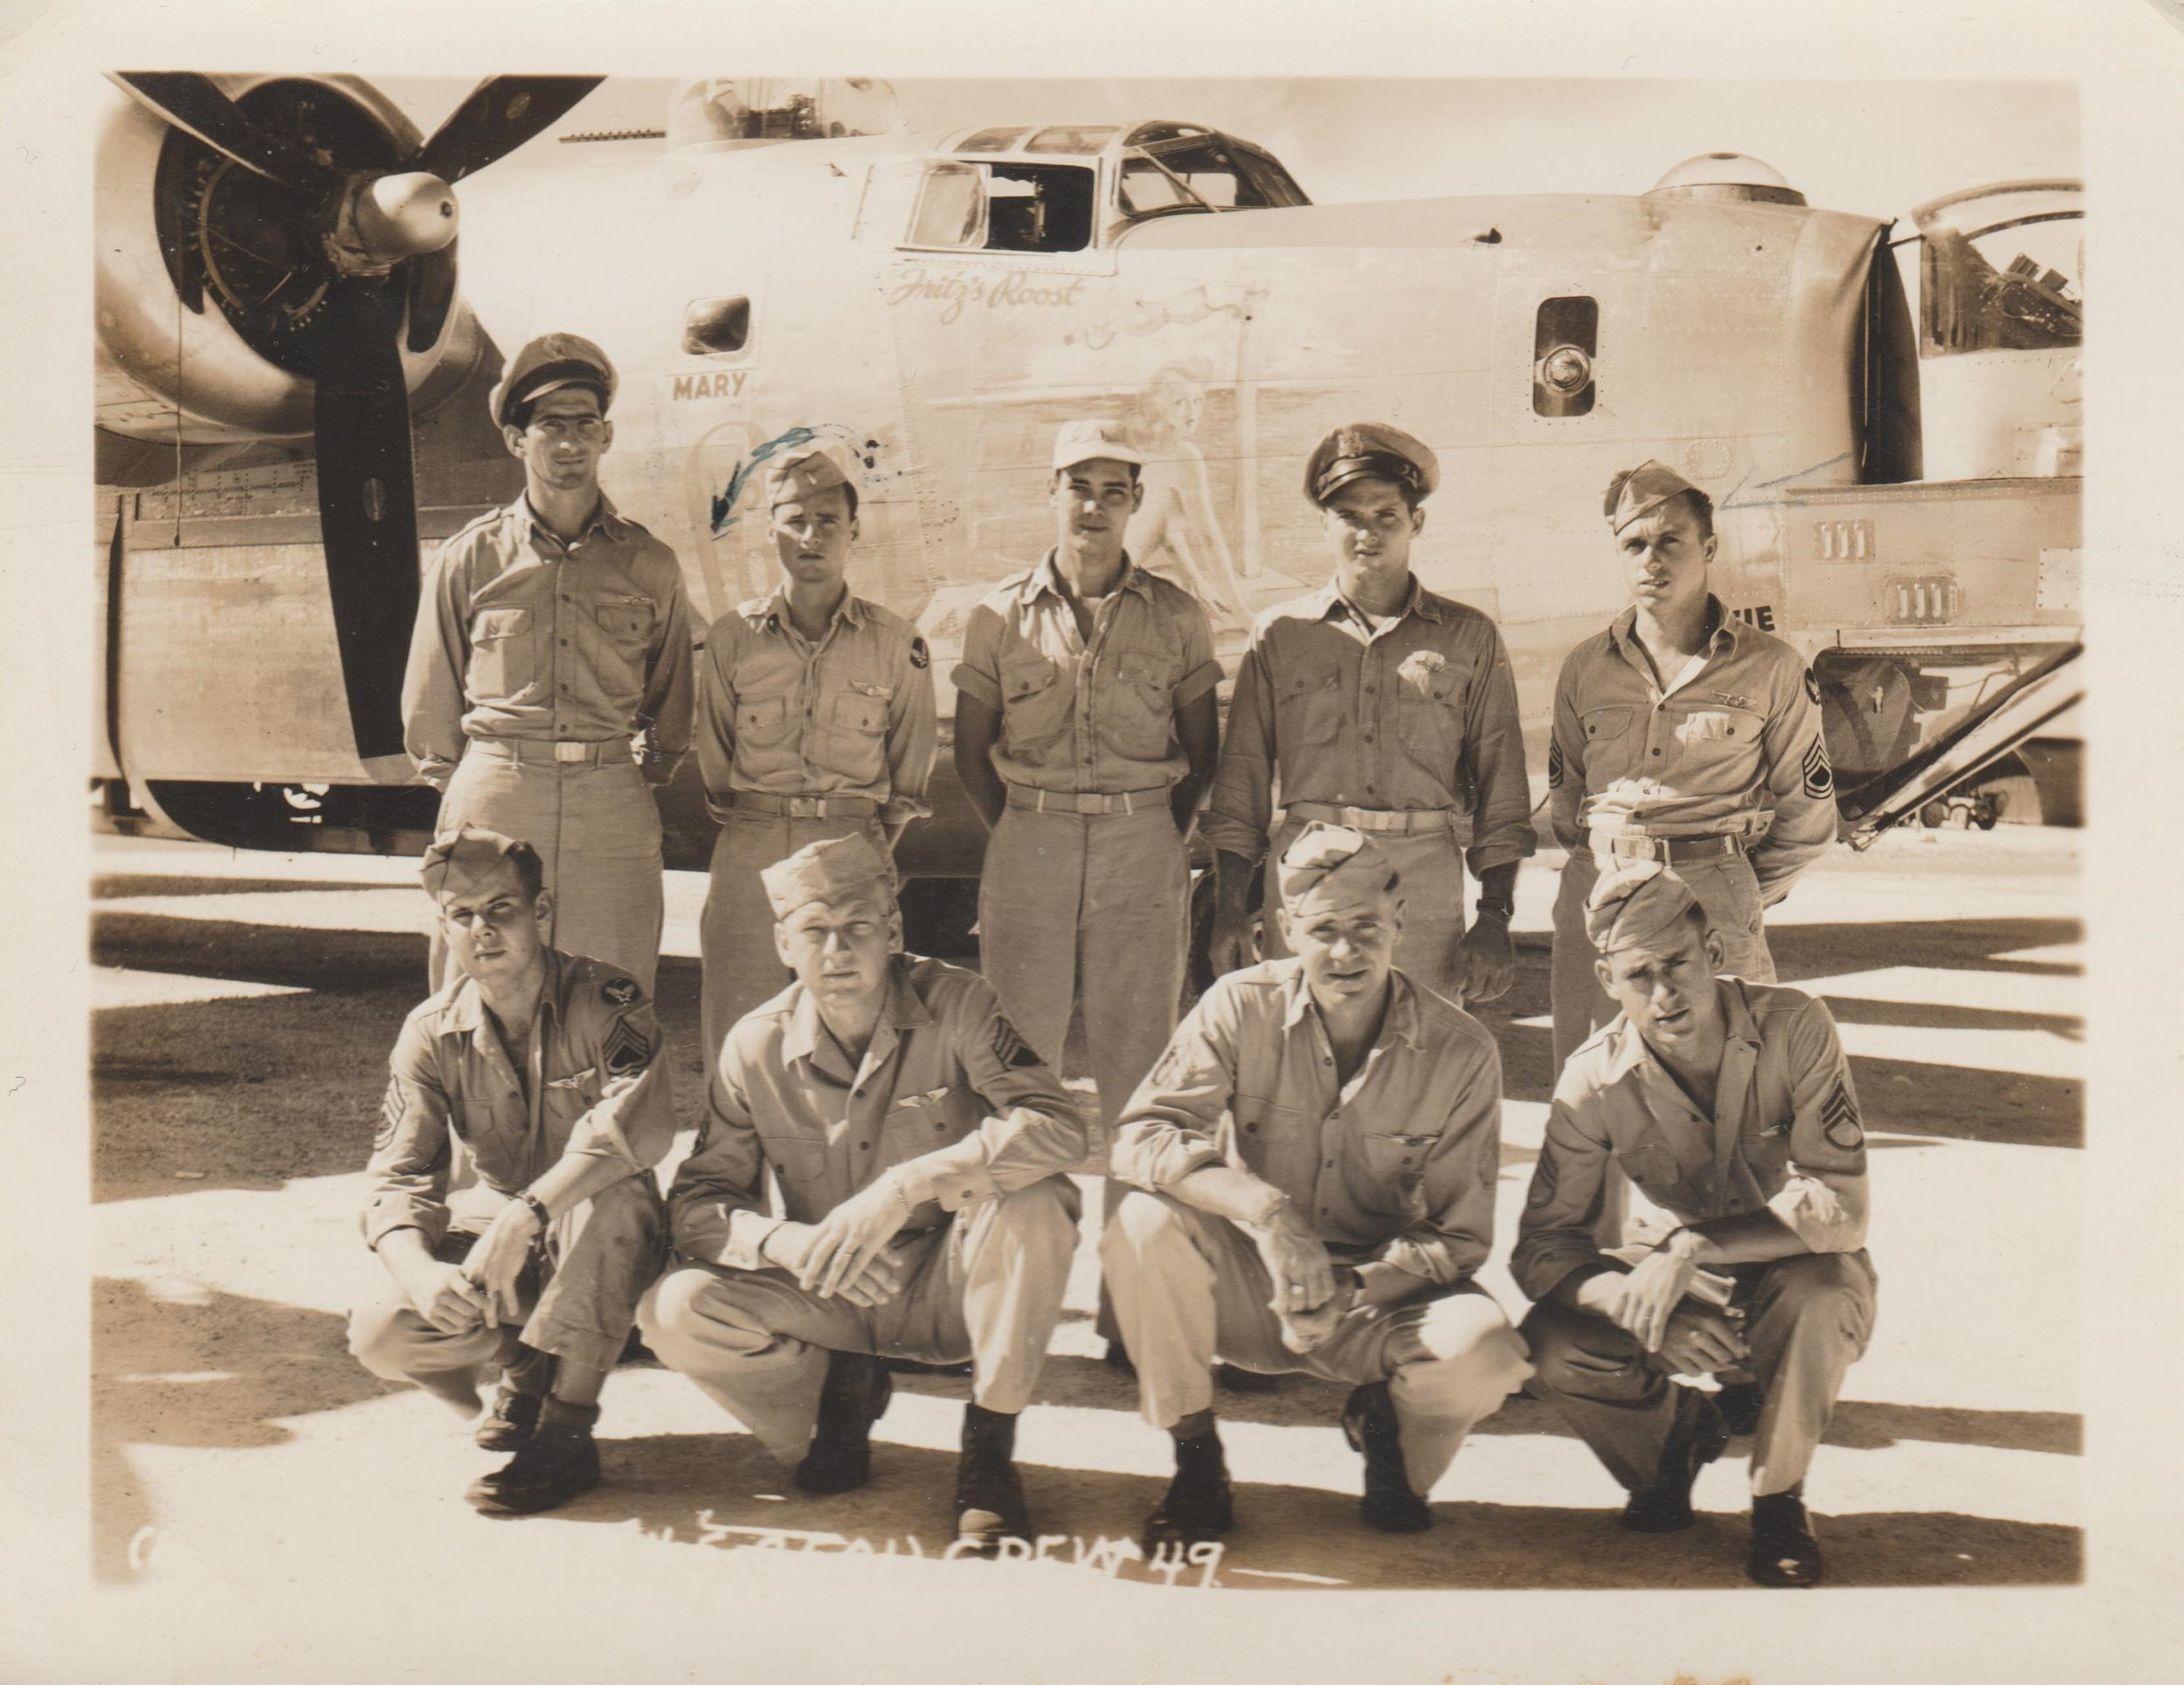 Joseph Dubinsky's veteran crew flew the  Taloa  on the  Haruna  mission, Group Mission #138. In this copy of the crew photo from the Co-pilot's great-nephew, Michael Flanagin, the men of Crew #49 are posed in front of the nose art of the  Lonesome Lady . (left to right)   Standing:  1st Lt. Joseph Dubinsky (Pilot); 2nd Lt. Rudolph C. Flanagin (Co-pilot); 2nd Lt. Lawrence A. Falls, Jr. (Navigator); 2nd Lt. Robert C. Johnston (Bombardier); T/Sgt Walter Piskor (Engineer)   Kneeling:  David. A Bushfield (Radio operator); Camilous P. Kirkpatrick (Waist Gunner); Charles C. Baumgartner (Lower Ball Turret Gunner); Charles C. Allison (Upper Turret Gunner); Not pictured: Julius Molnar (Tail Gunner). Not pictured here was Capt. Donald Marvin, an observer on his 40th combat mission who piloted most of the  Taloa  missions.